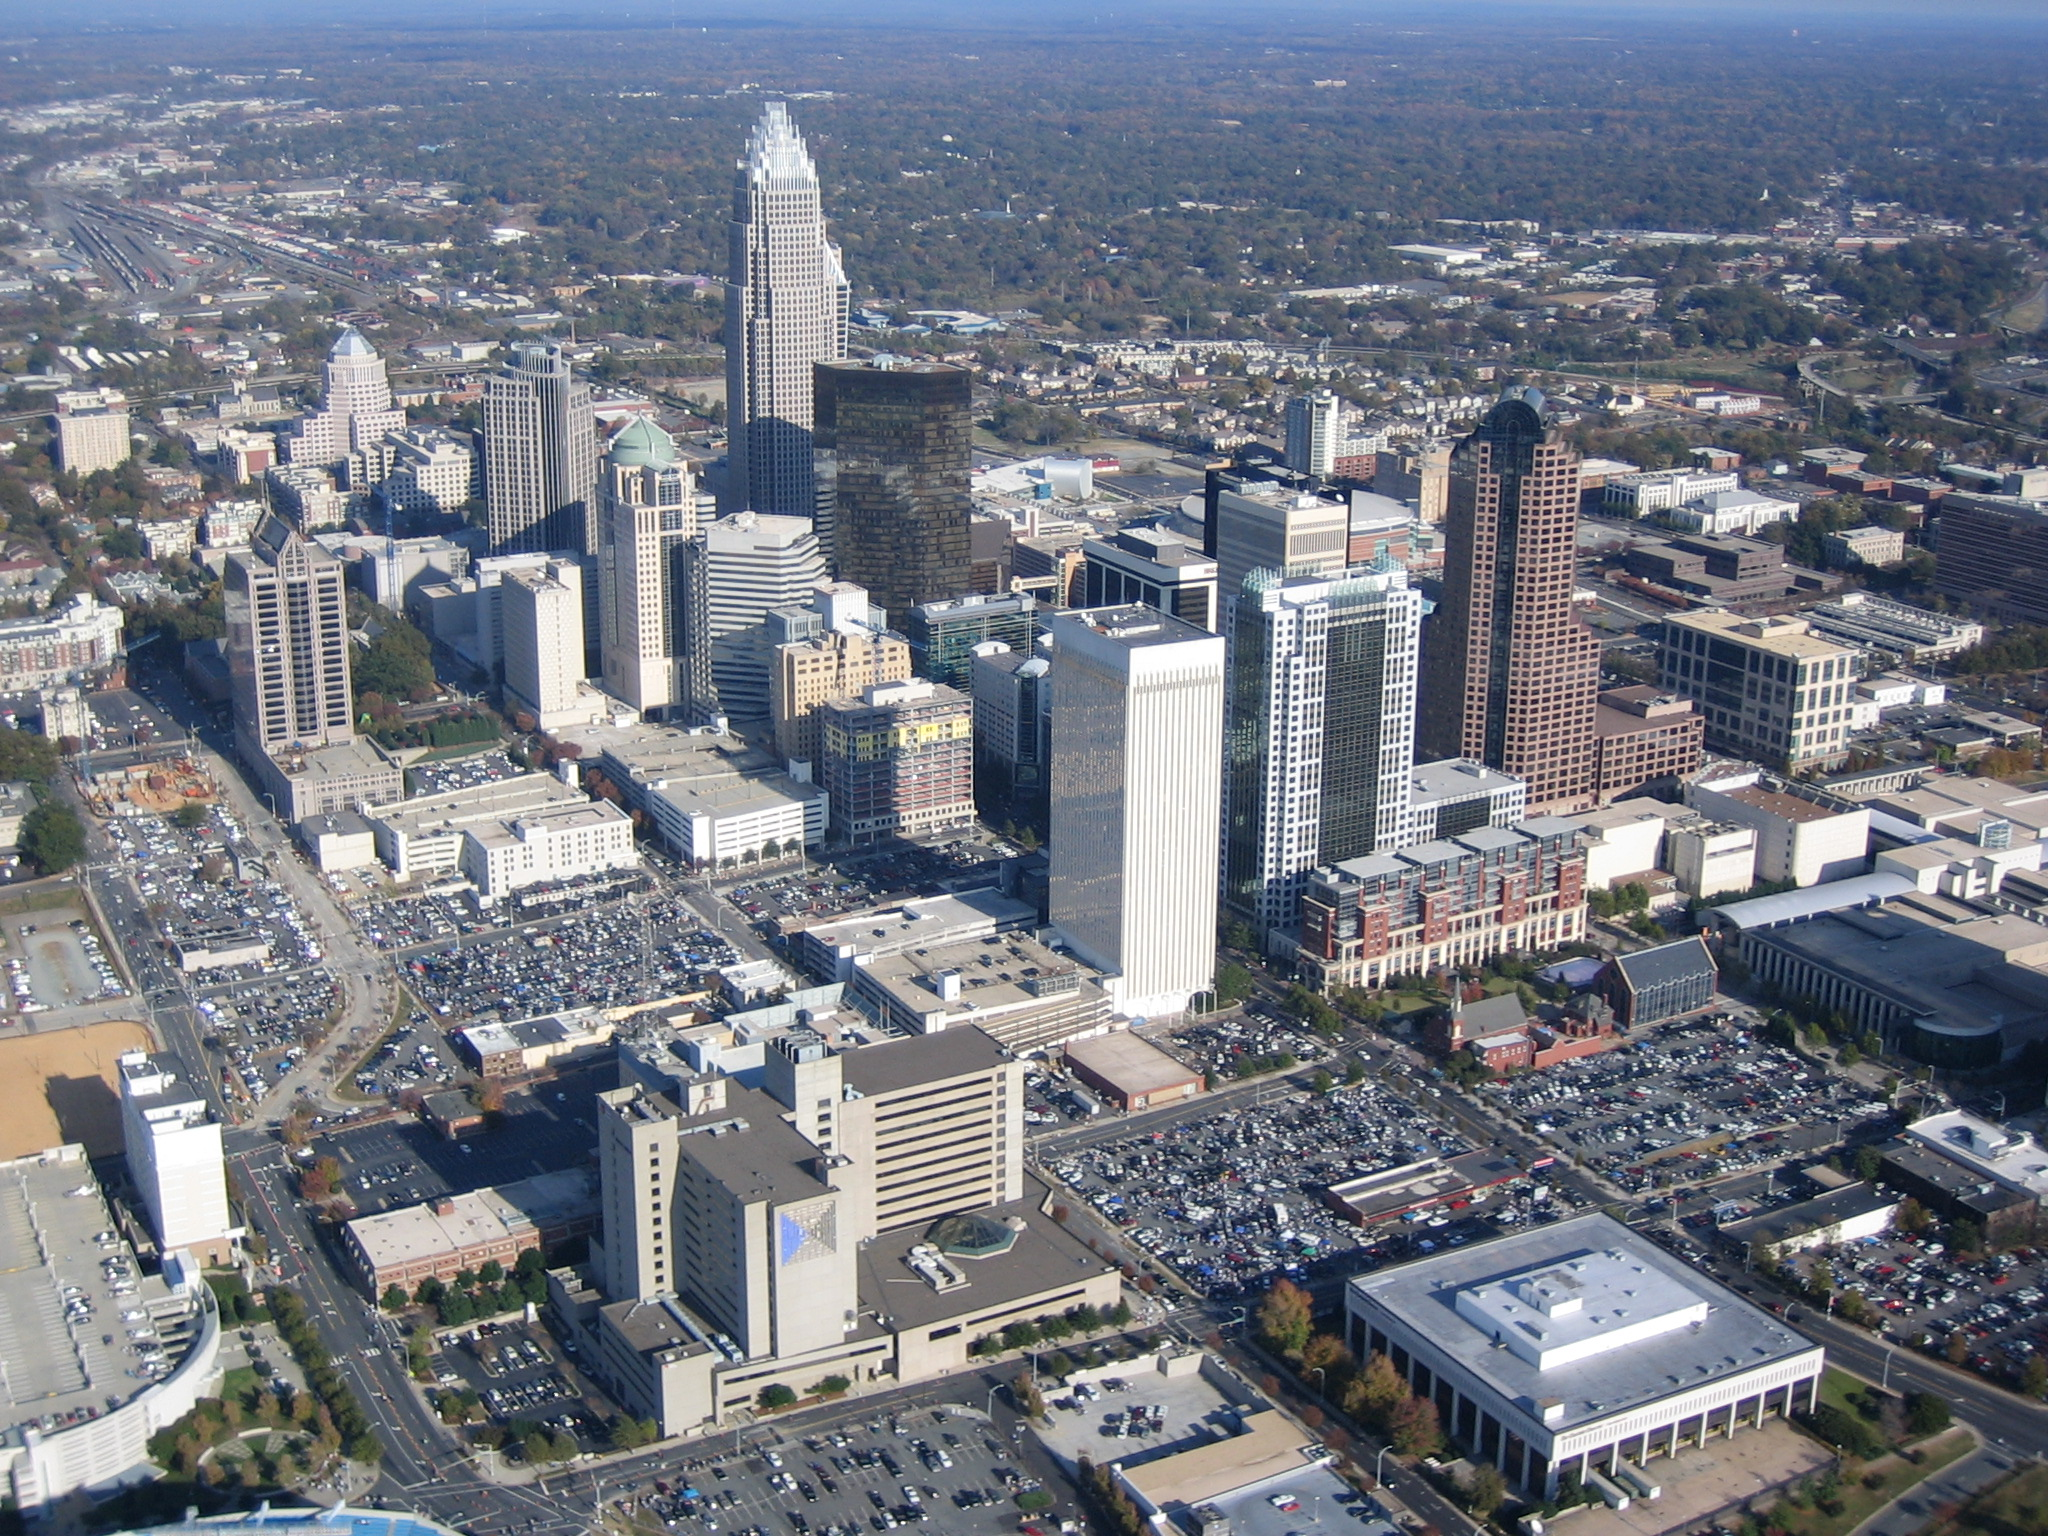 winston salem nc map with File Aerial Uptown Charlotte 2005 Nov 13 on Article 3ebb3ea2 9367 11e2 9aa1 0019bb30f31a further Greensboro North Carolina City Map also About Greenville Sc likewise 17215 likewise Trout Tales.